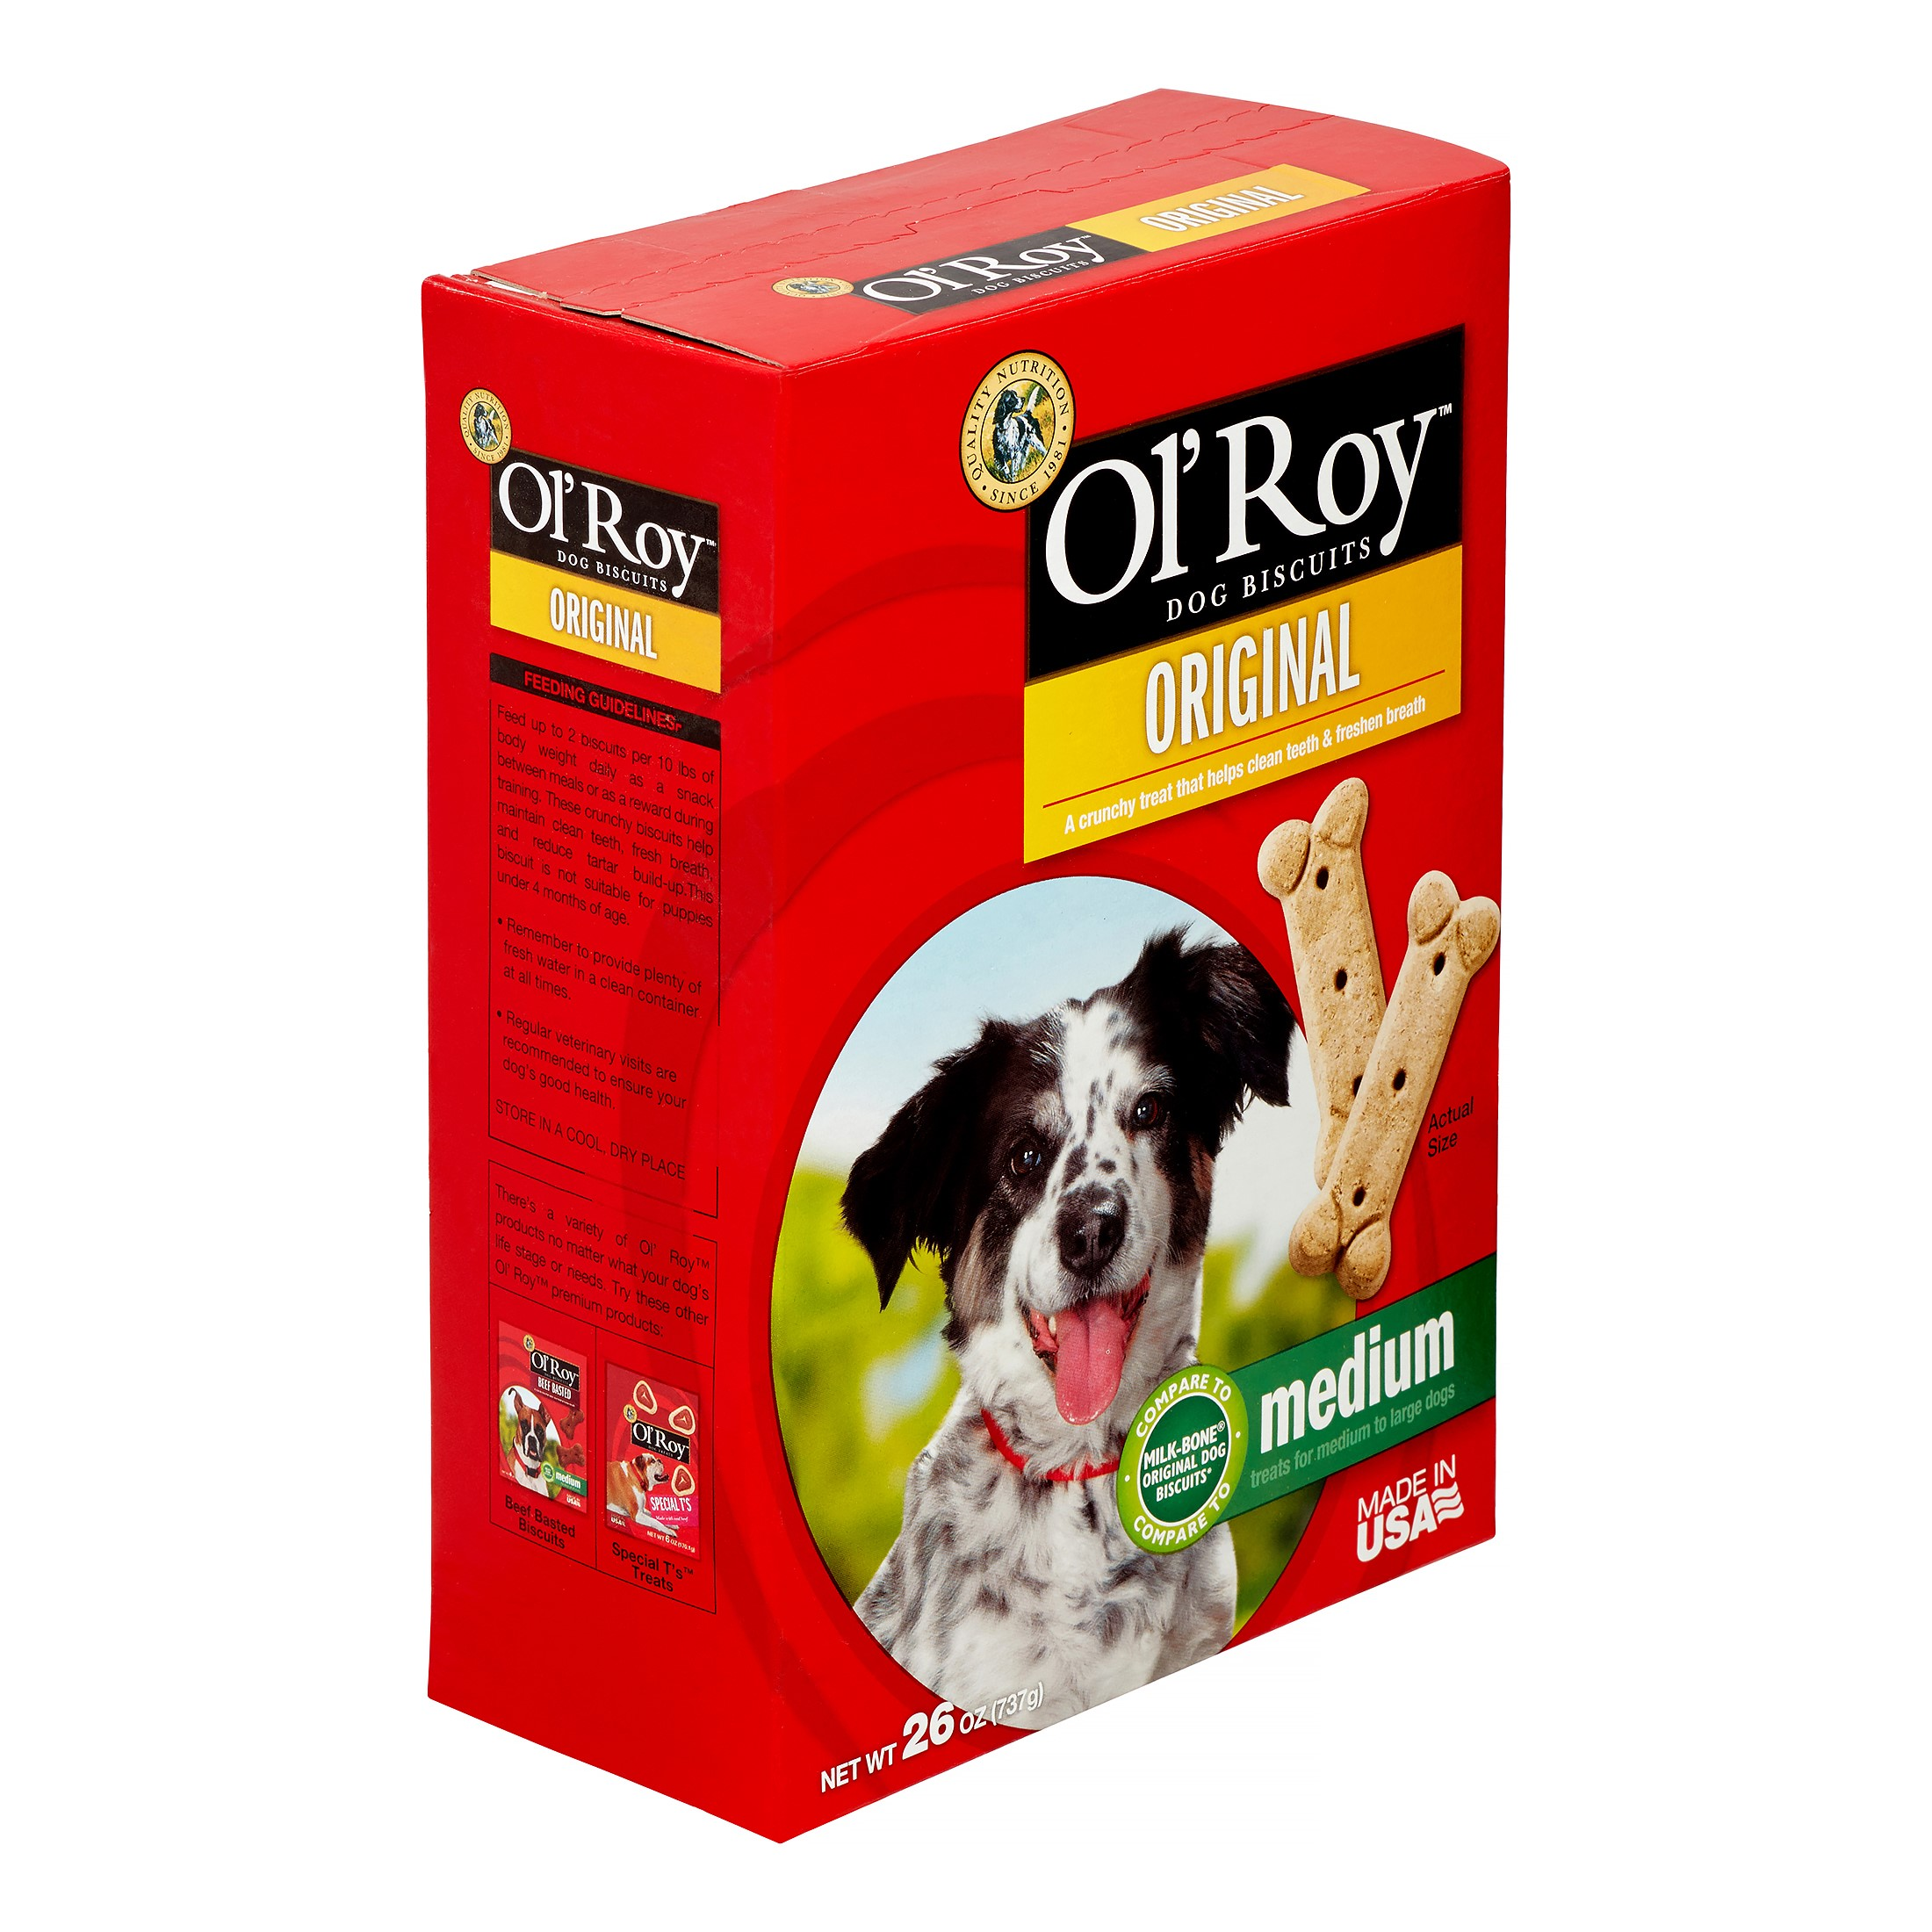 Ol'Roy Milk Biscuit Dog Treats, 26 Oz